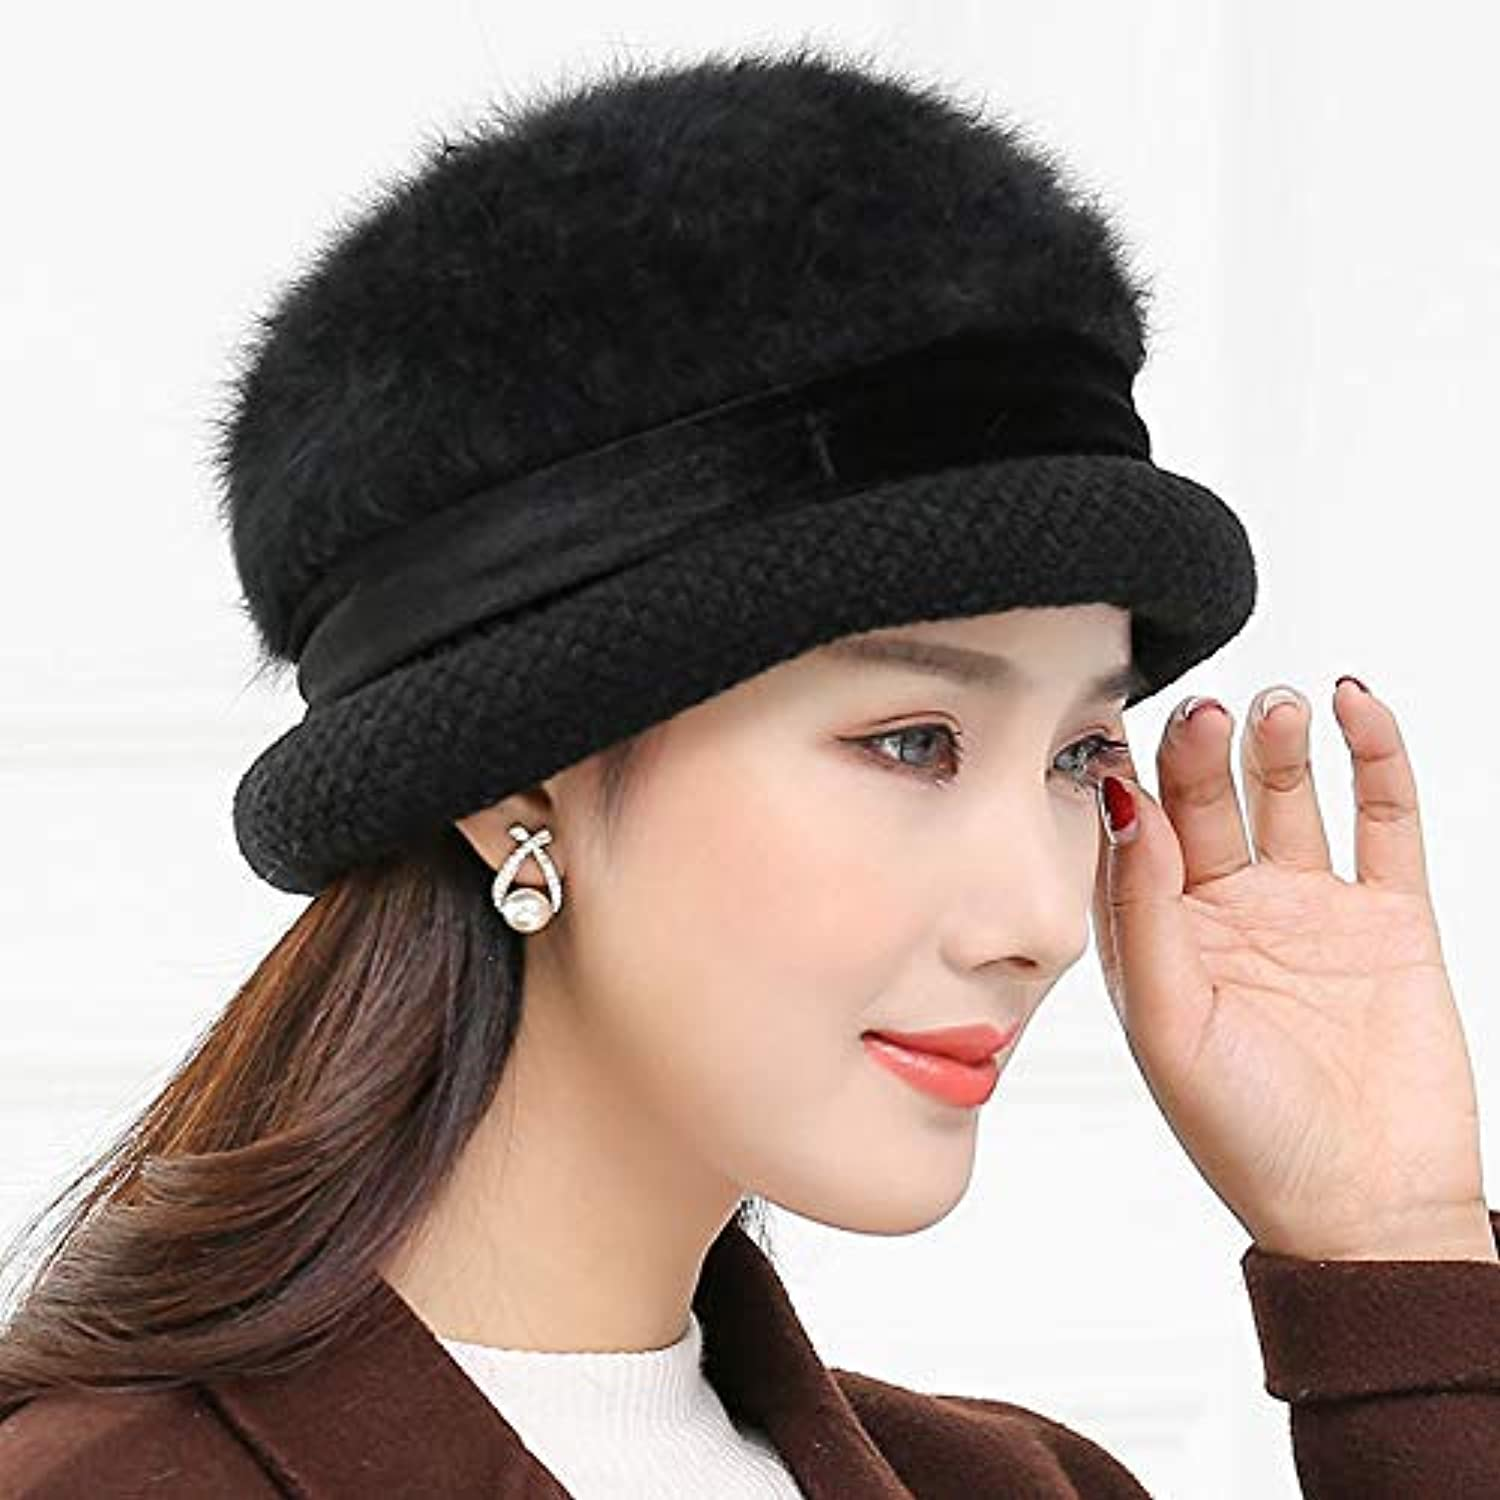 Sports Hat Mother hat MiddleAged Ladies Knitted hat Double Thick Warm Wool hat Ear Predector Old hat (color   Black) Outdoor Cap